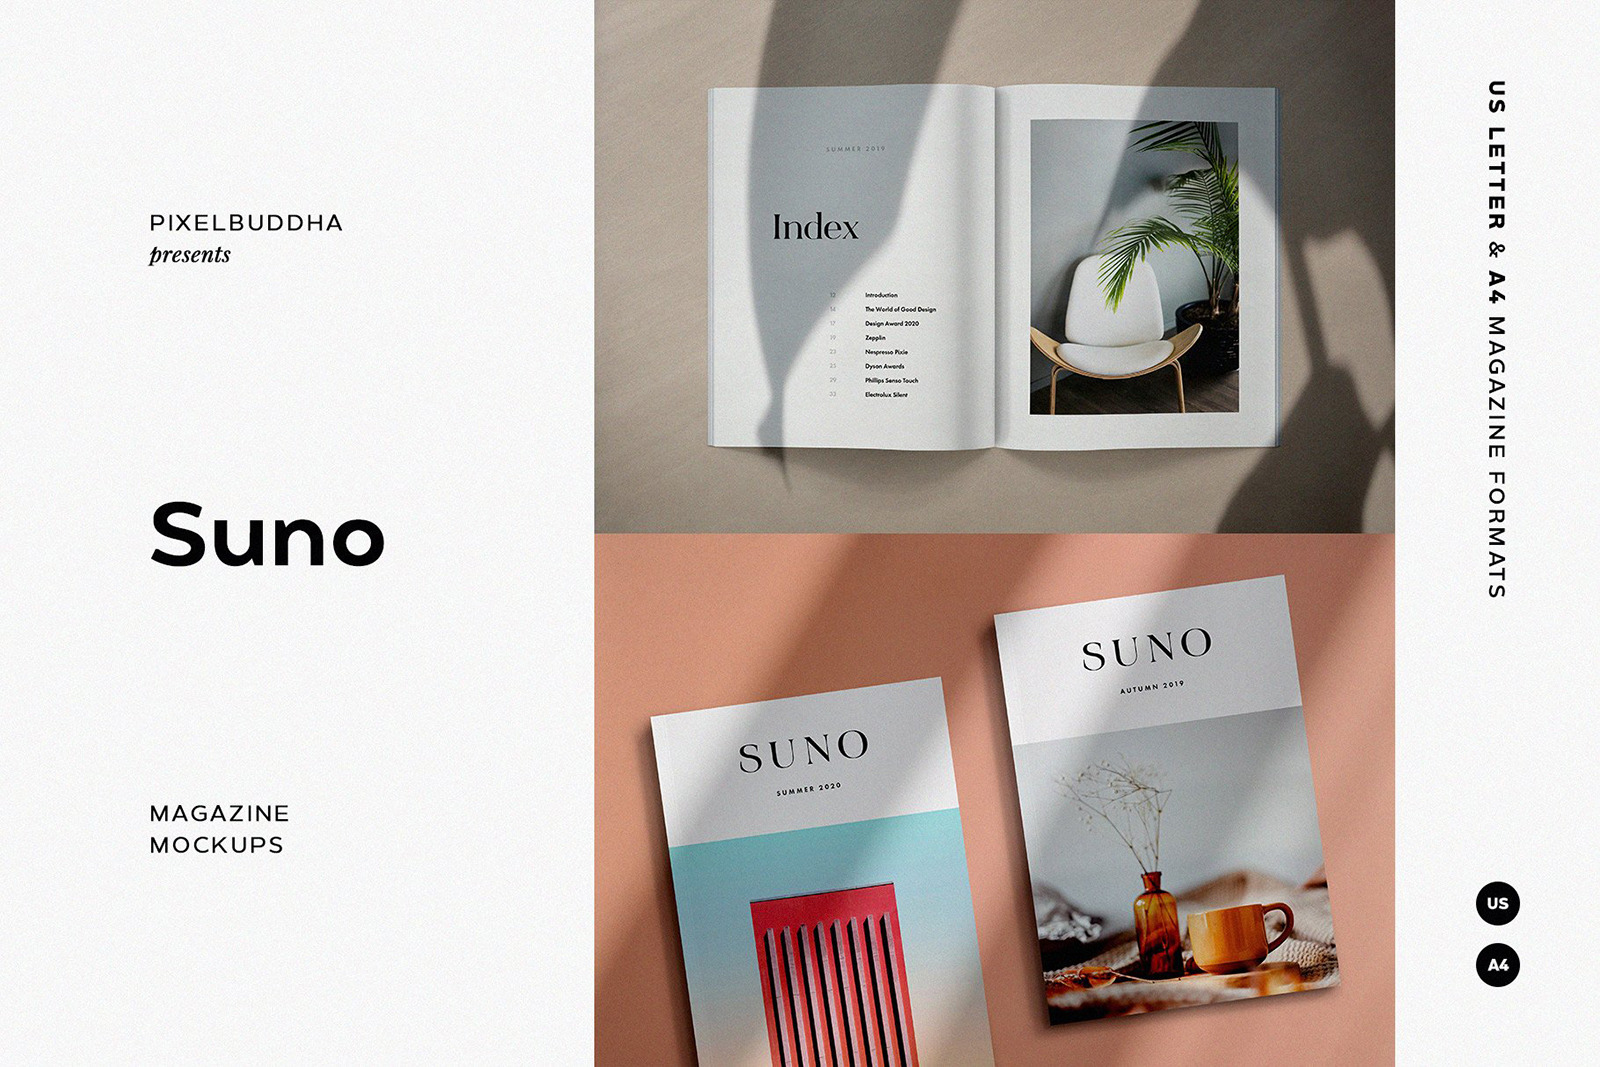 Suno Magazine Mockup Kit In Stationery Mockups On Yellow